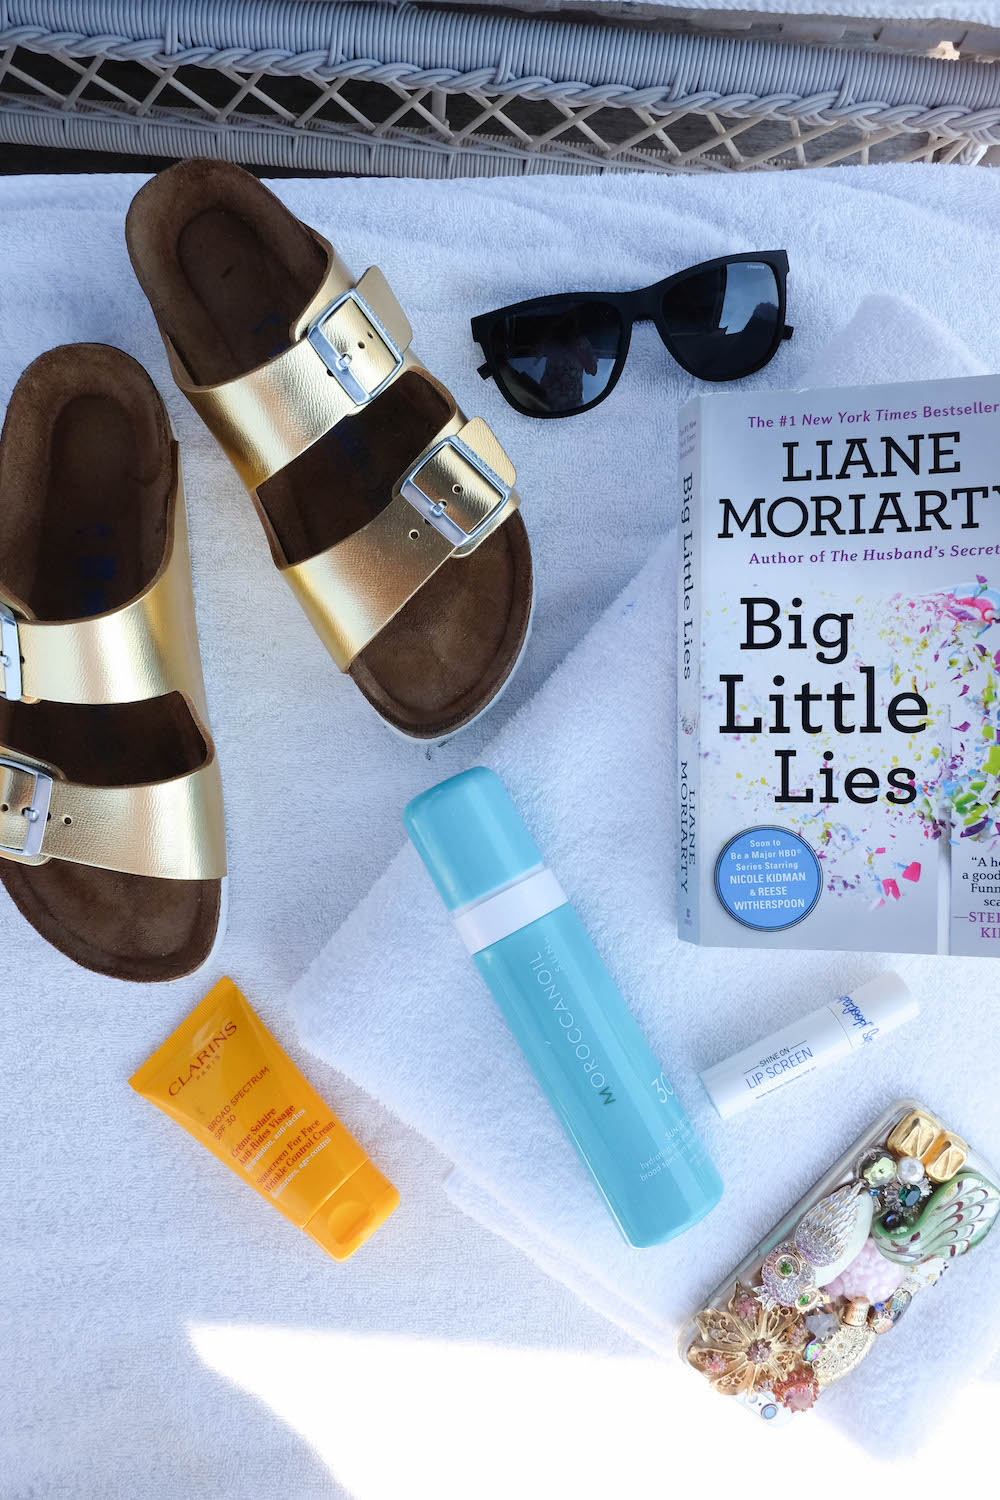 The Wequassett Resort and Golf Club - Poolside Cabana Essentials - Liane Moriarty Big Little Lies, Gold Birkenstocks, Polaroid Eyewear